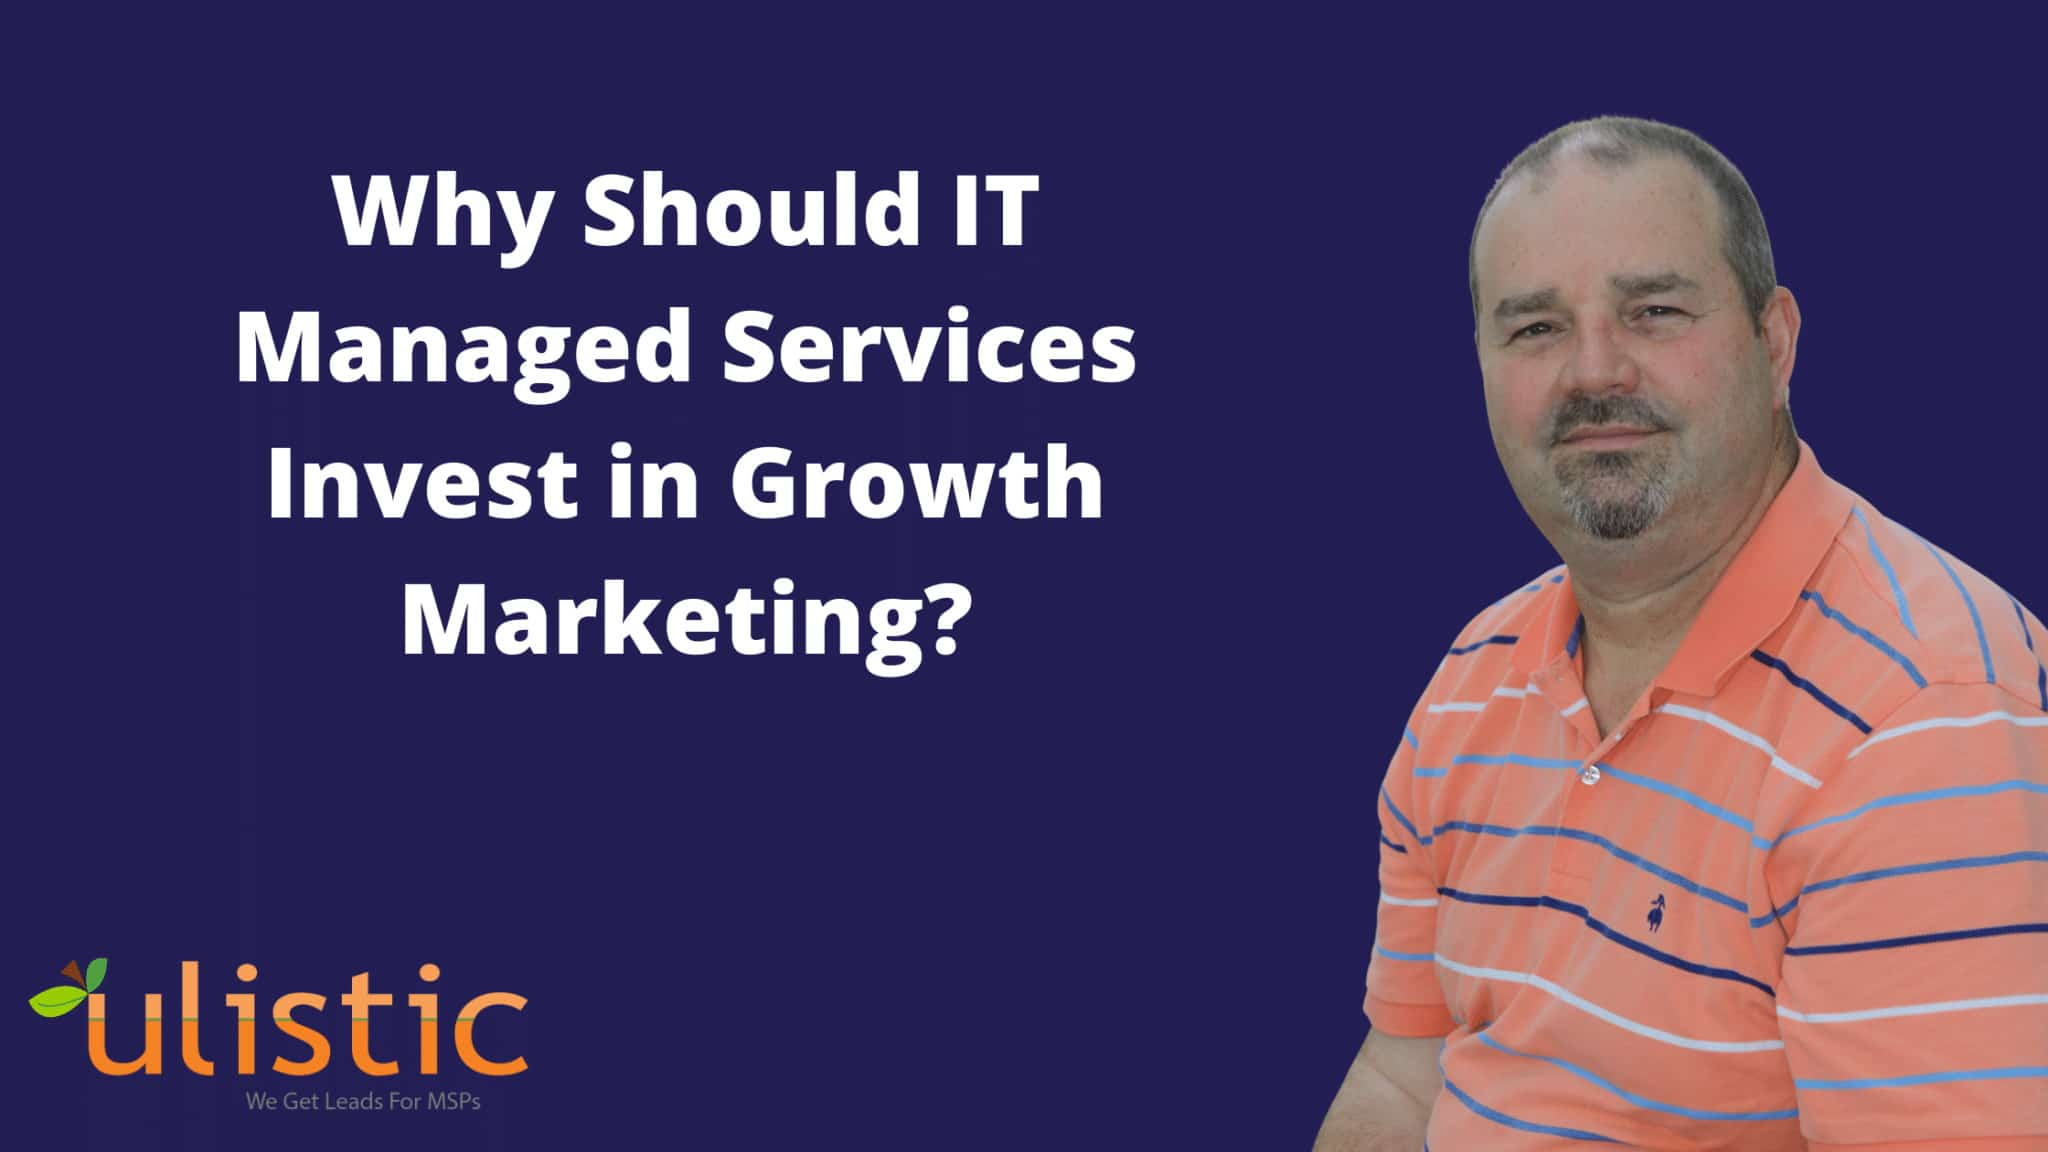 Why Should IT Managed Services Invest in Growth Marketing?